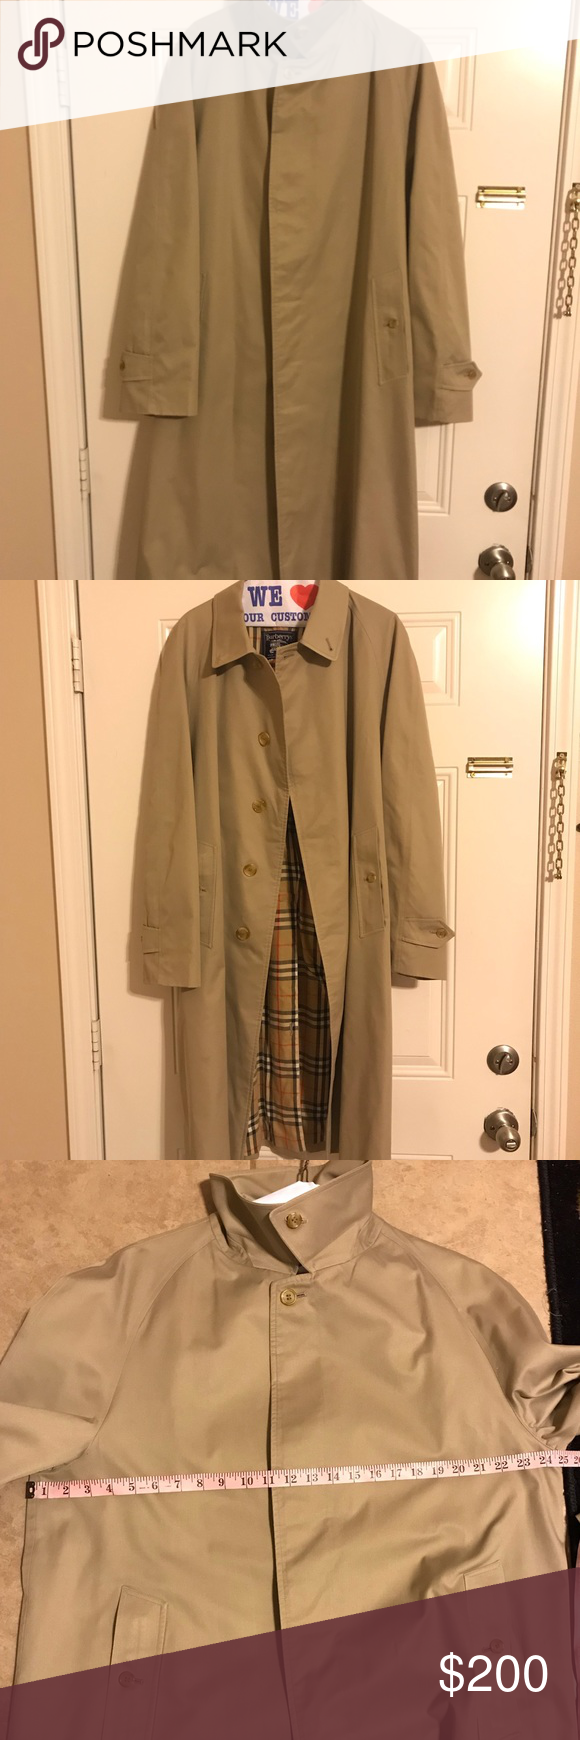 Authentic Burberry Trench Coat Vintage 80 S Xxl Please Use Measurements Coat Is In Great Condition No Belt All Burberry Trench Coat Trench Coat Burberry Trench